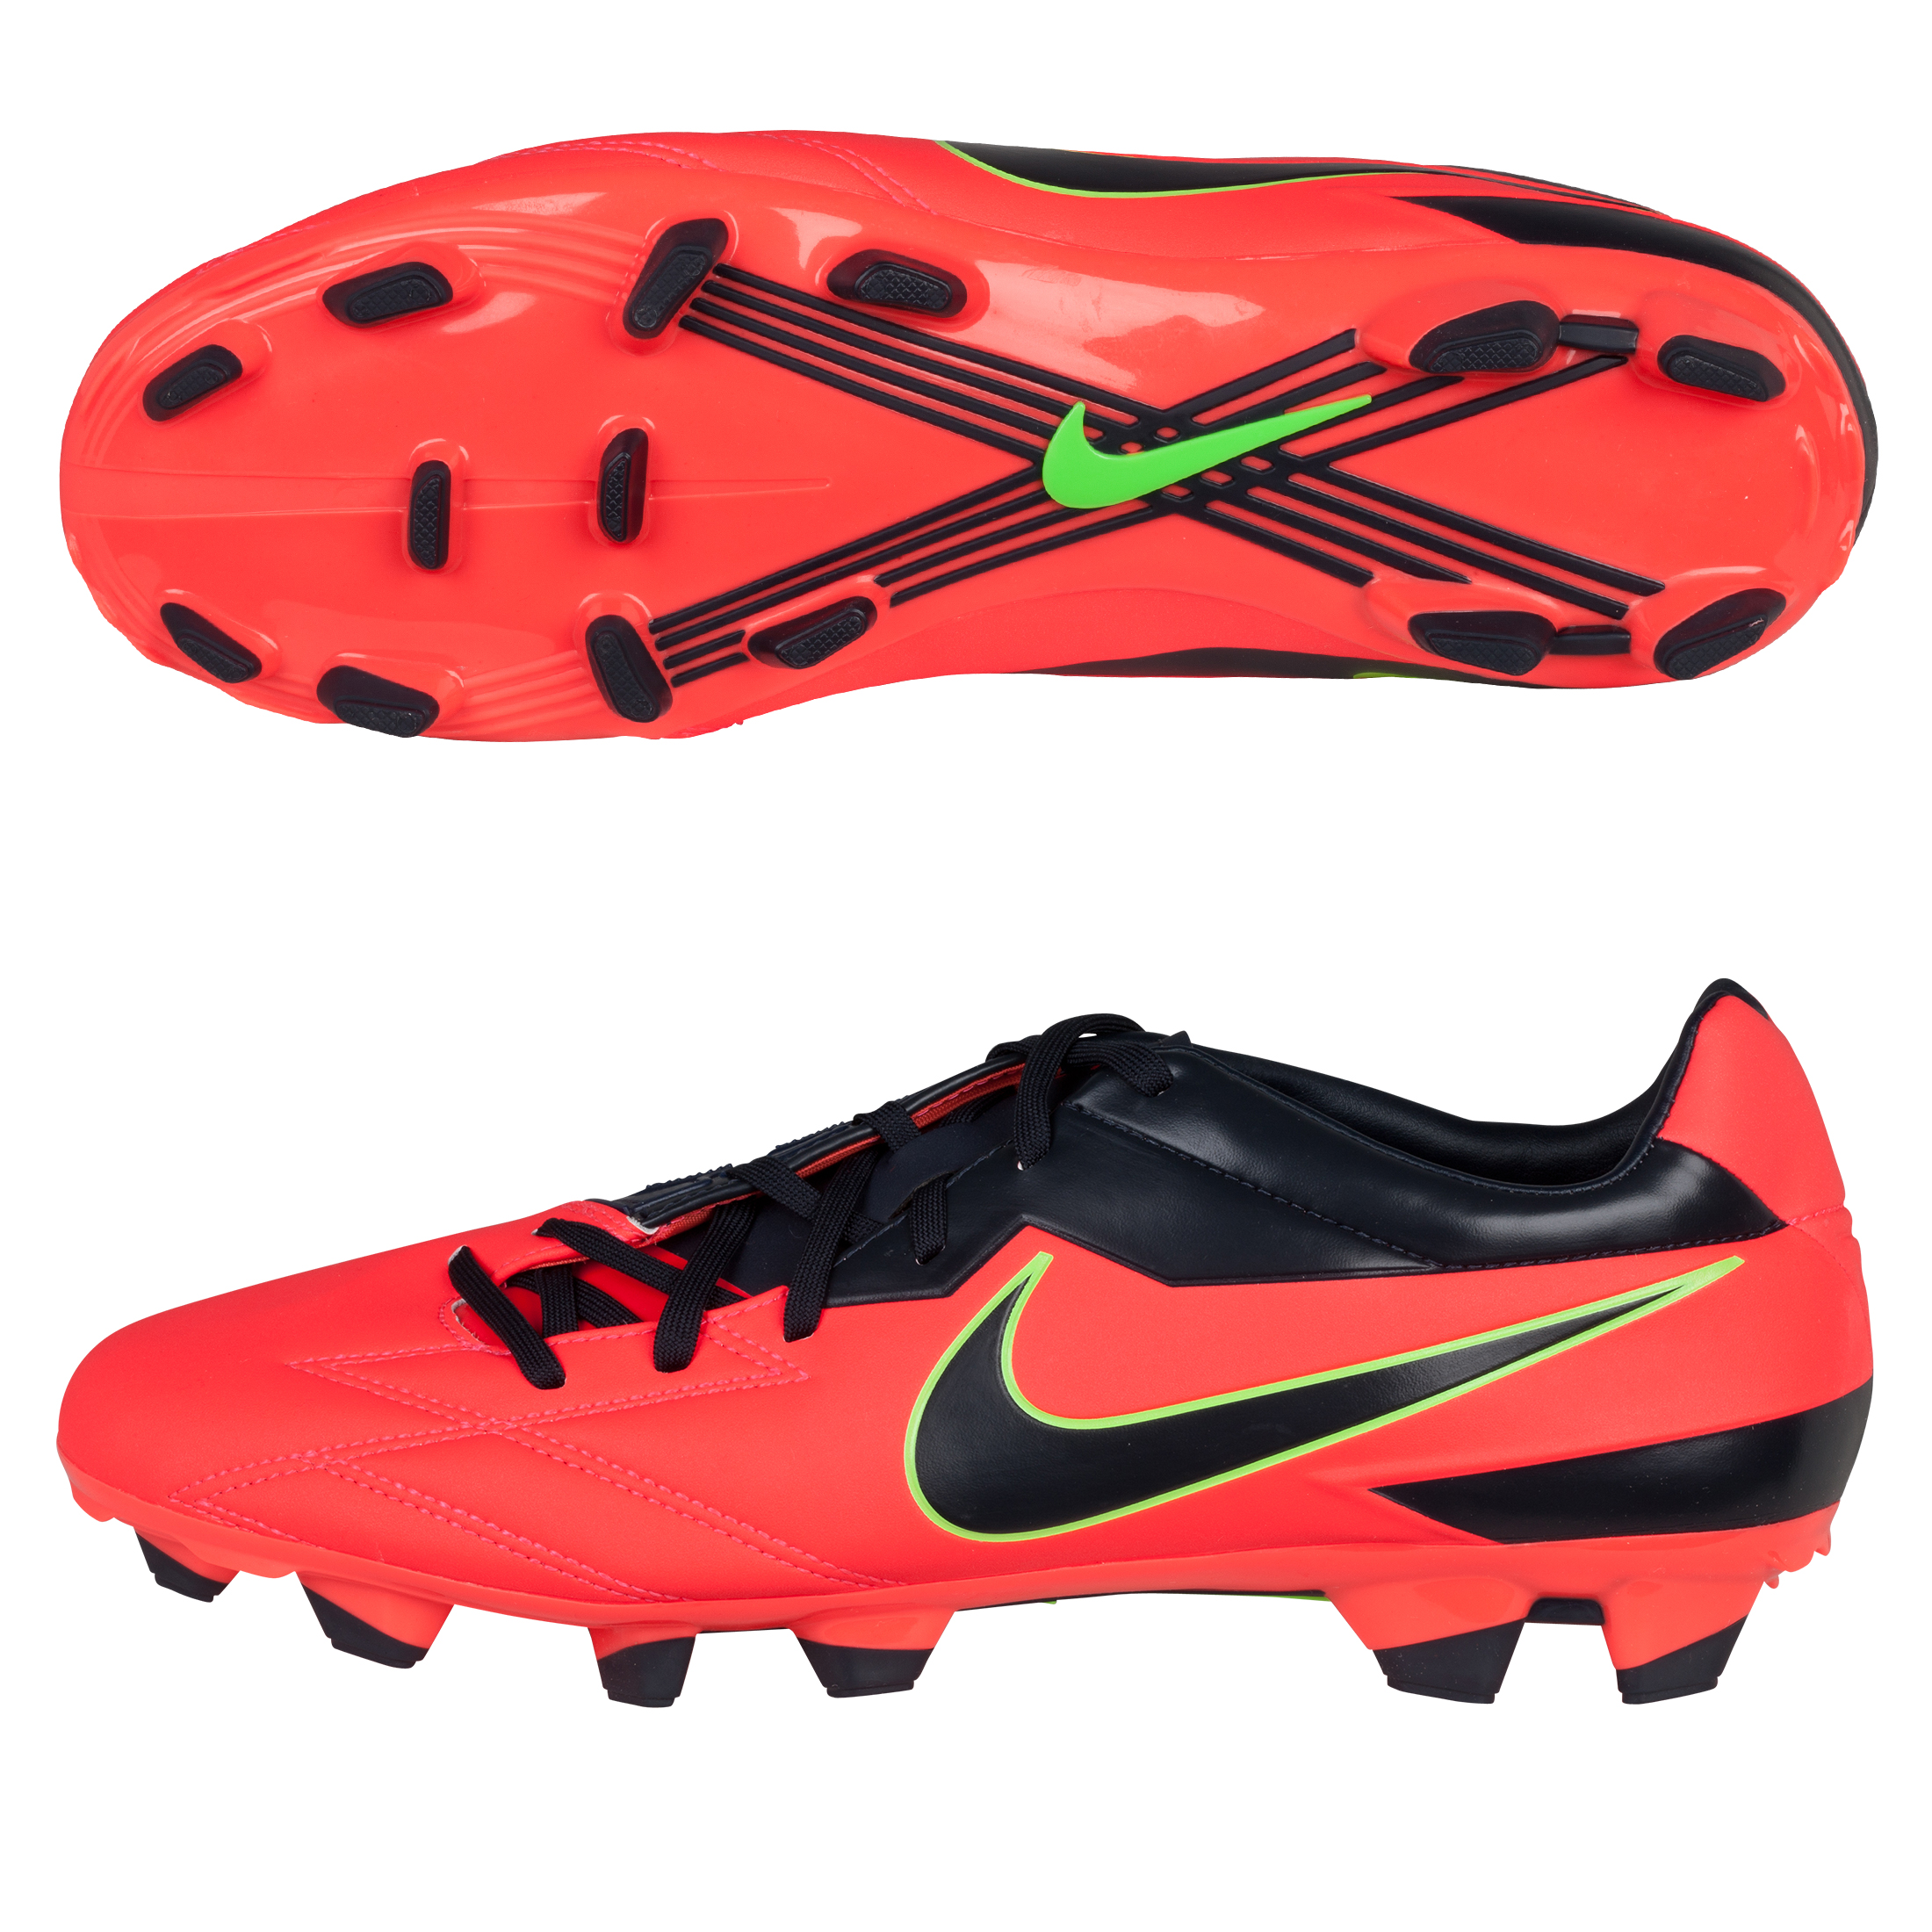 Nike T90 Strike IV Firm Ground Football Boots - Bright Crimson/Dark Obsidian/Electric Glow